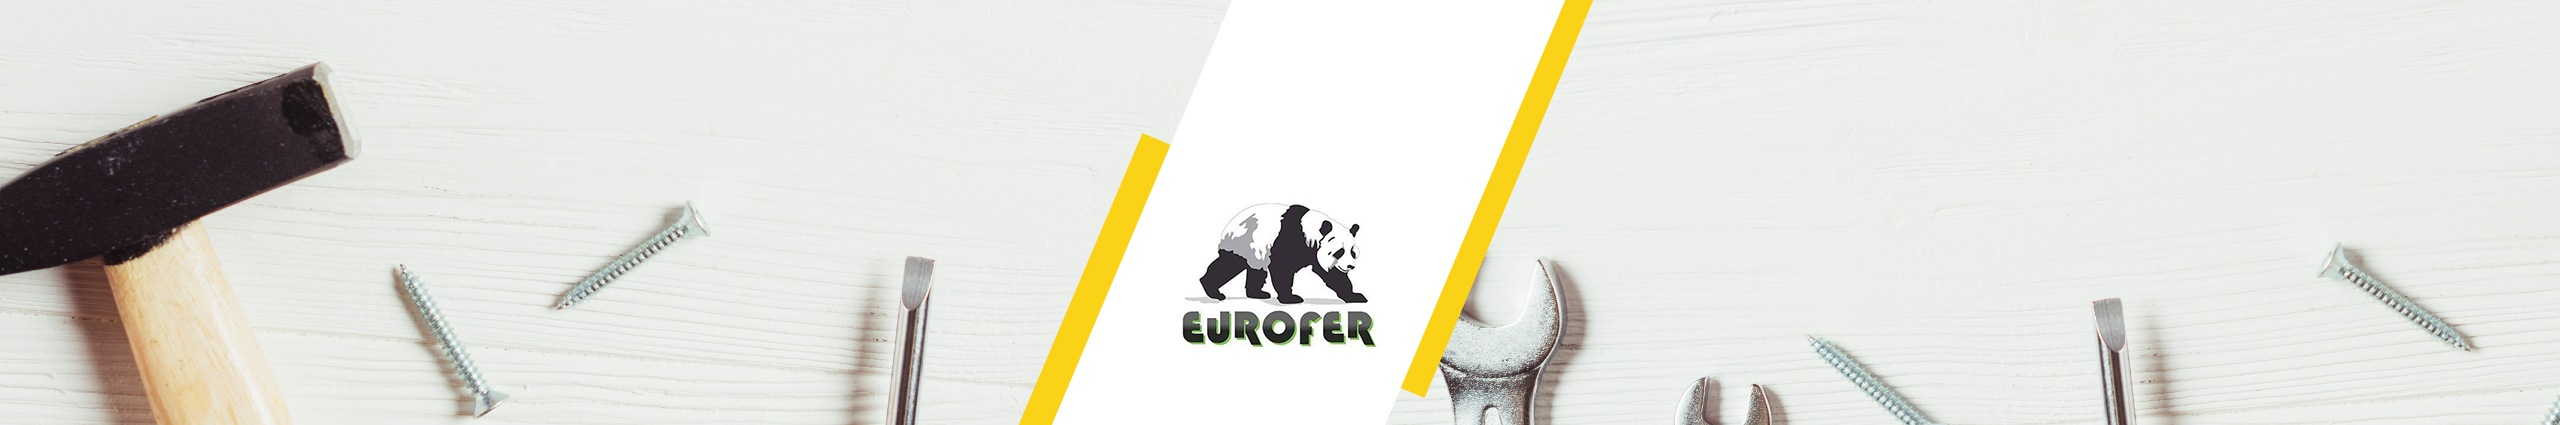 eurofer-APPSeCONNECT-success story